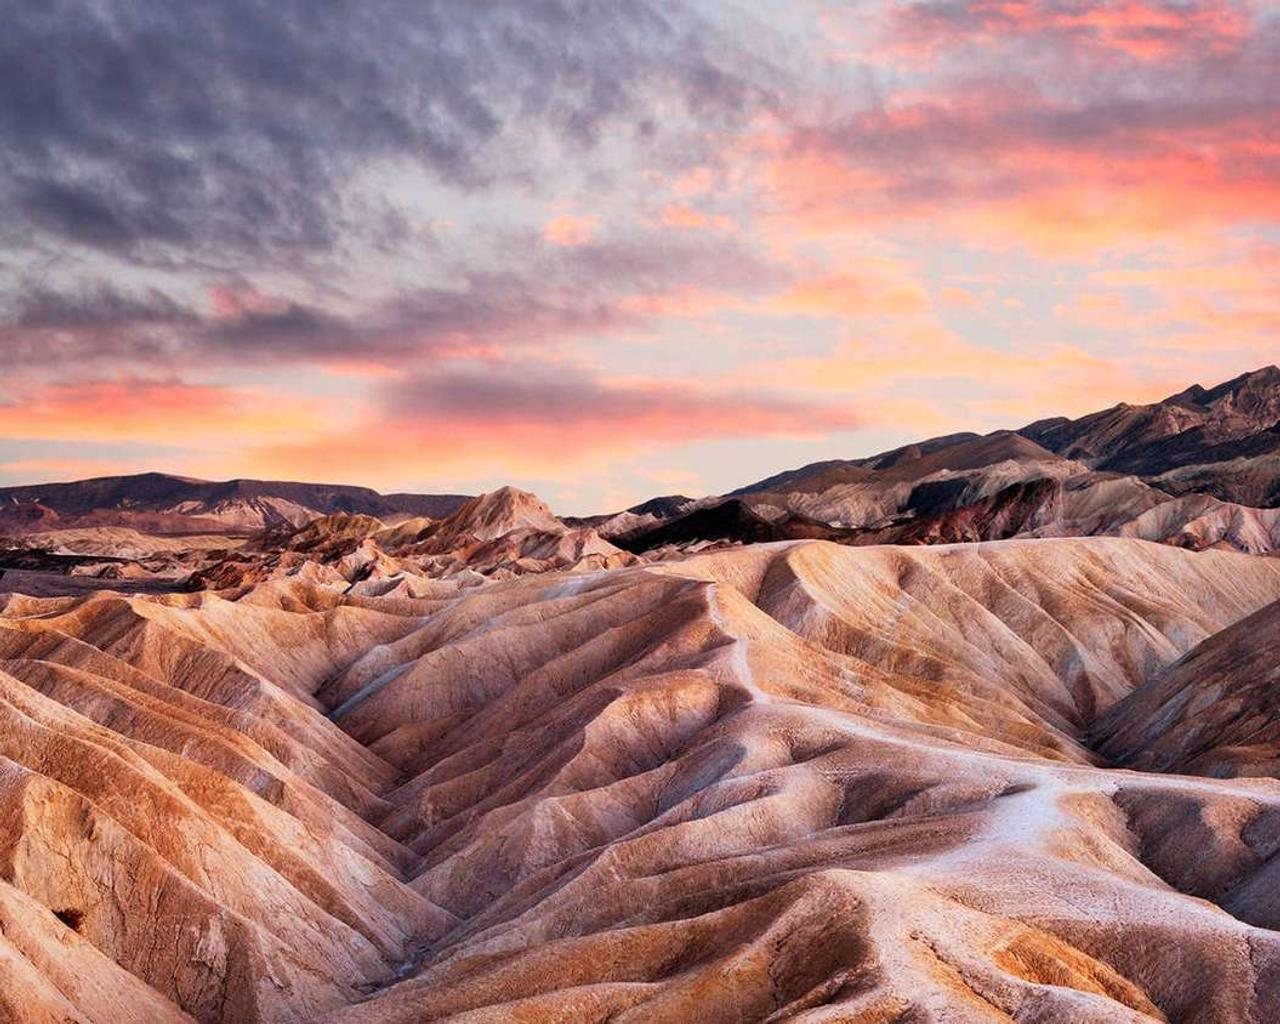 In Death Valley National Park in Arizona, a congressional aide was discovered dead and his partner was saved.